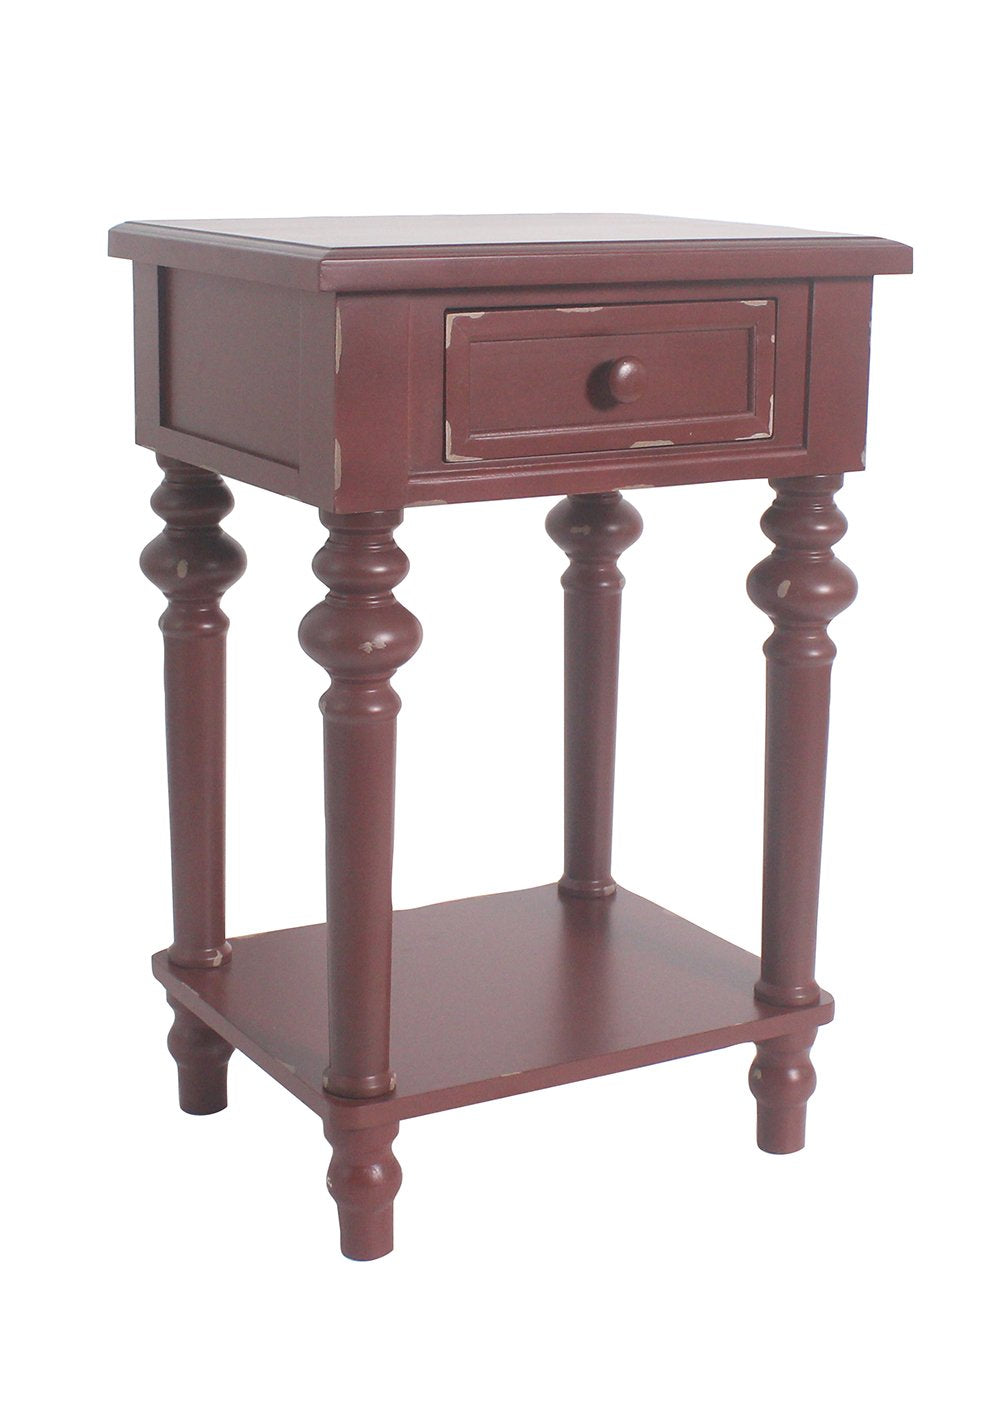 Brooks Accent End Table 25 3 4 inch Tall – urbanest